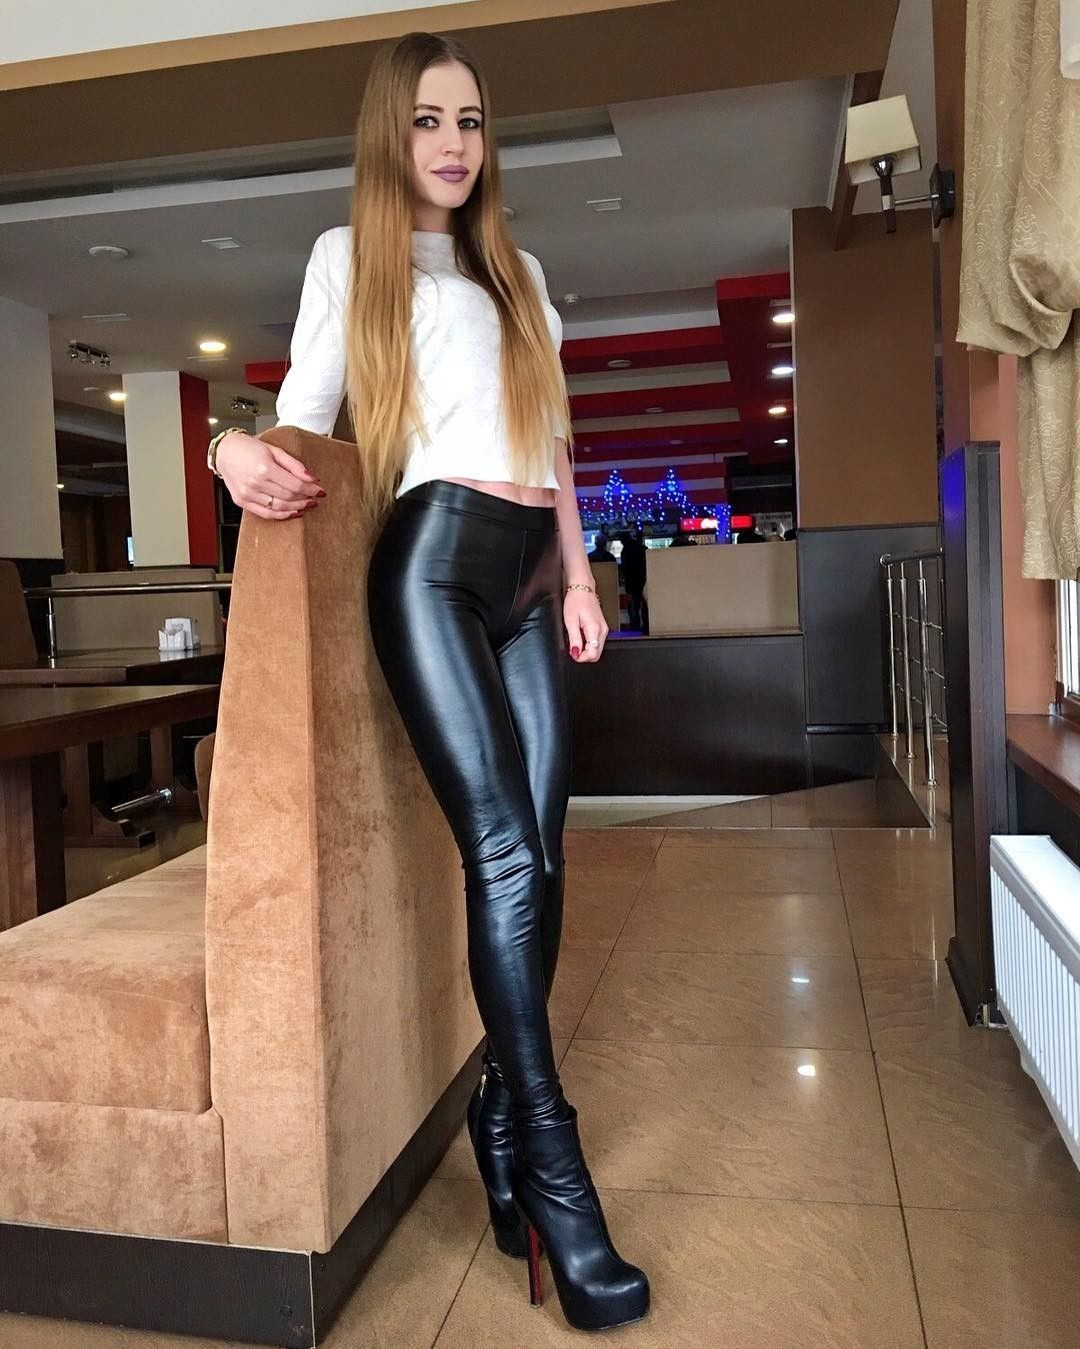 bf9a49c631d44c Leather look leggings | Leather | Leather leggings, Leather tights ...